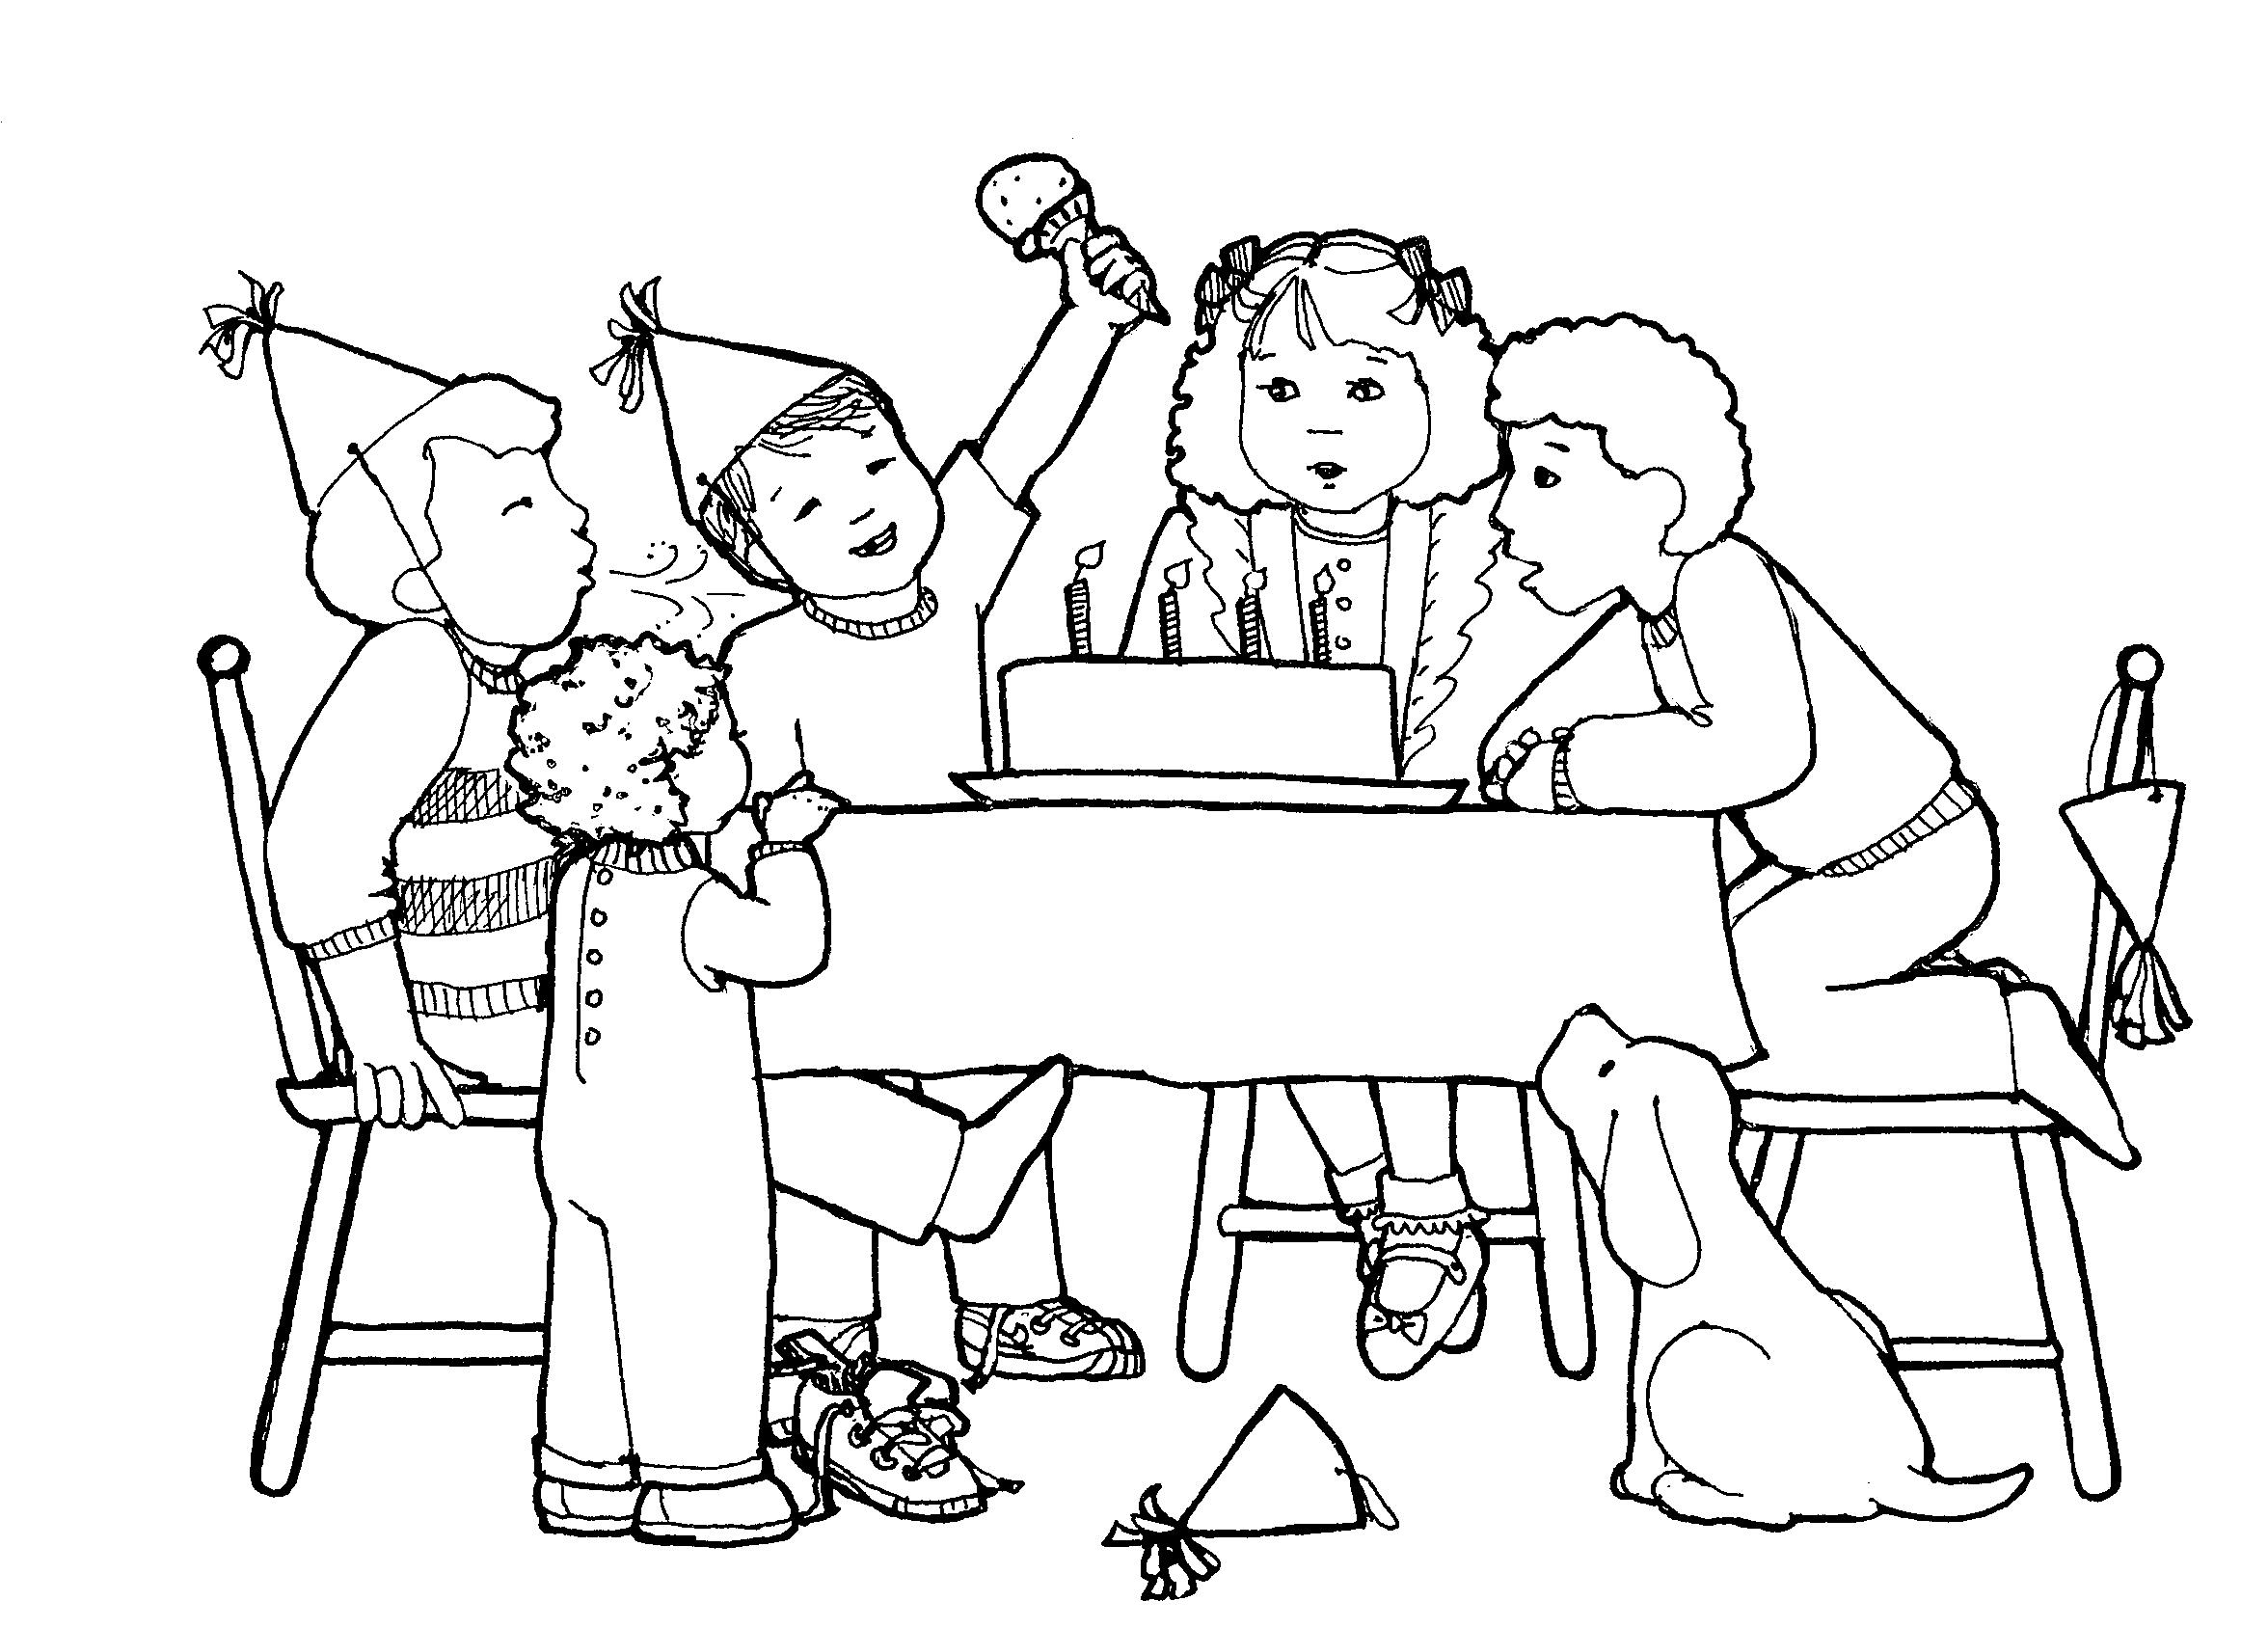 drawing of birthday celebration ; efe8c16f076a77d727c9790b92c7c17e_people-at-a-birthday-party-clipart-collection-happy-birthday-party-clipart_1300-1140